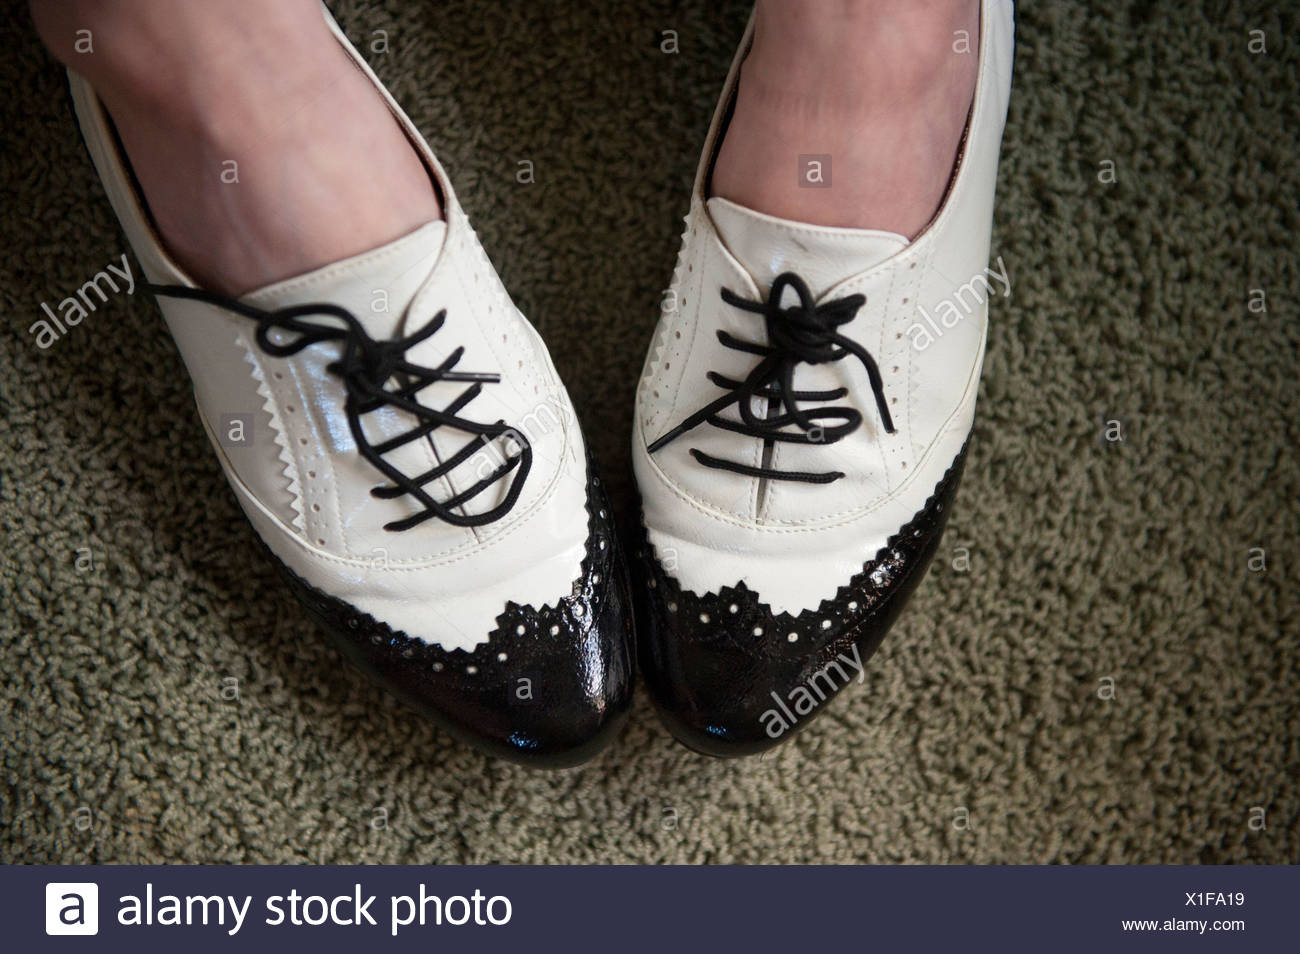 Close up of vintage shoes. - Stock Image